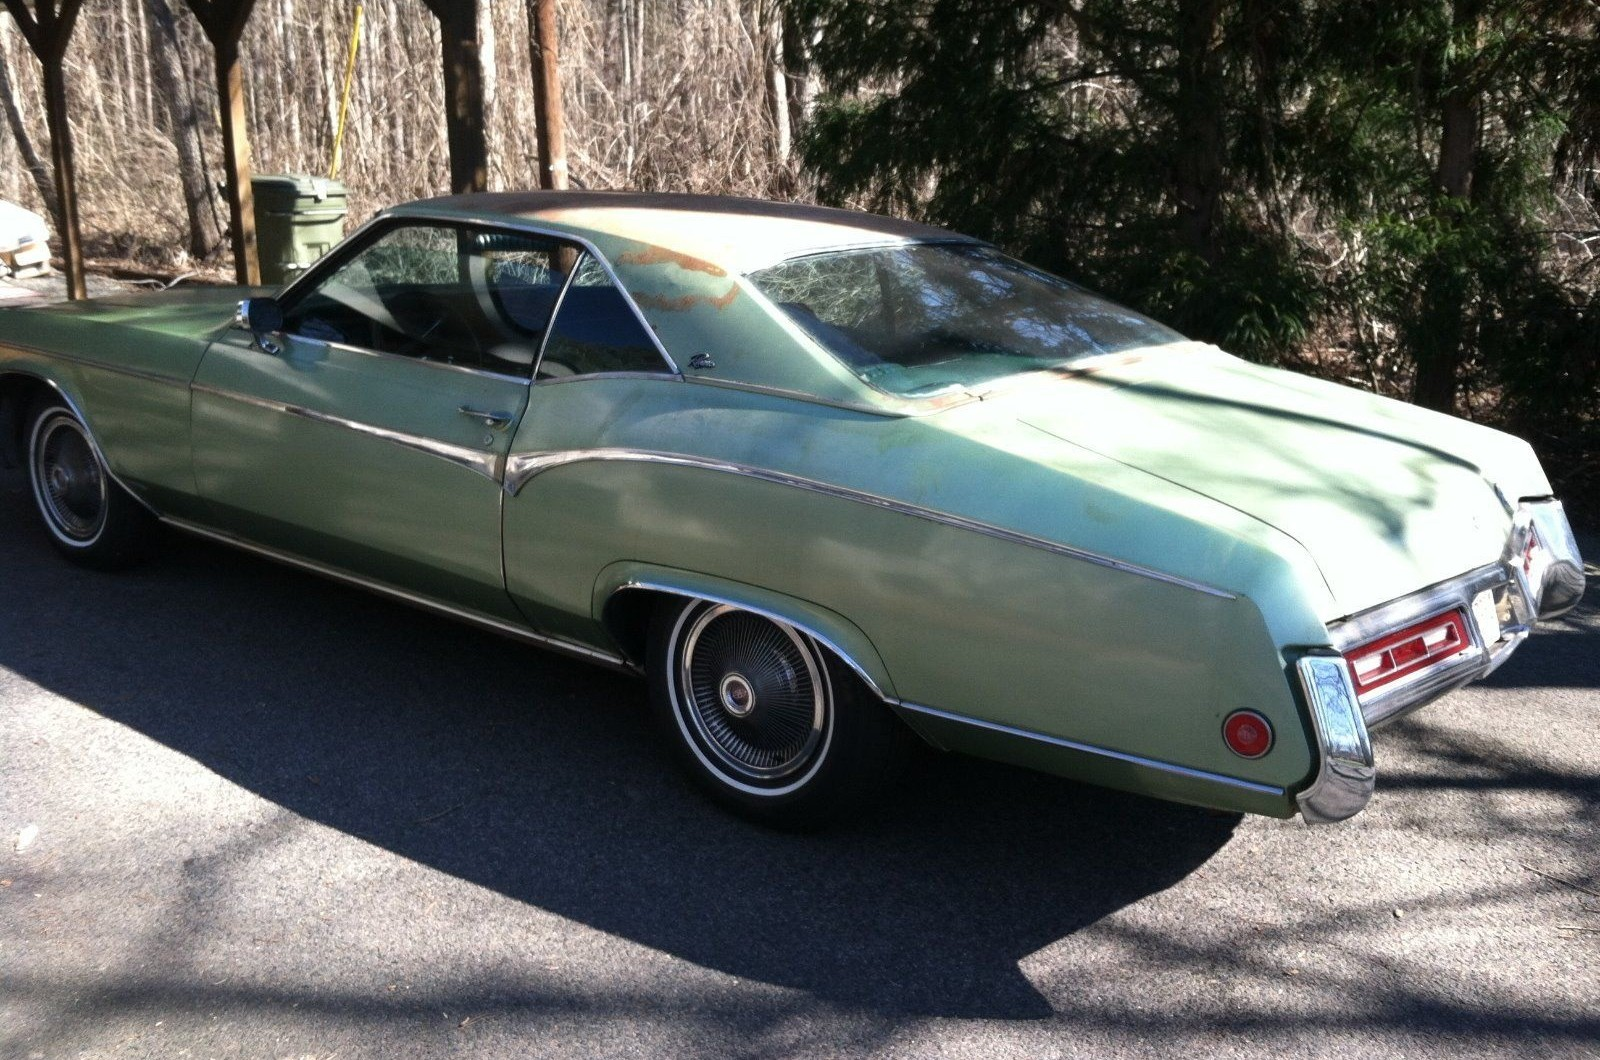 1970 riviera he lives in durham north carolina and has listed this carolina cruiser for sale here on ebay where the buy it now is an affordable